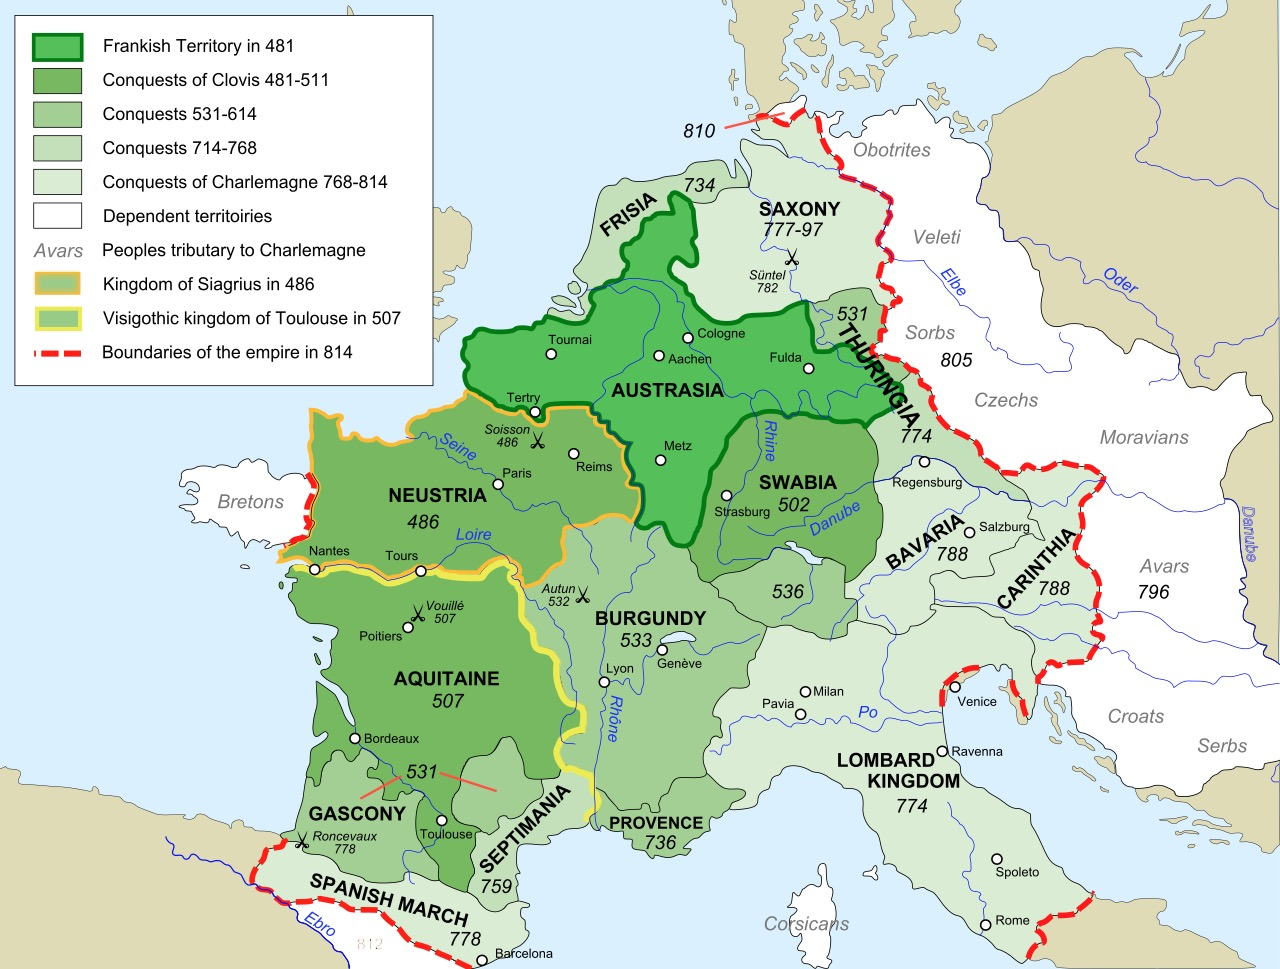 1280px Frankish Empire 481 to 814 en large